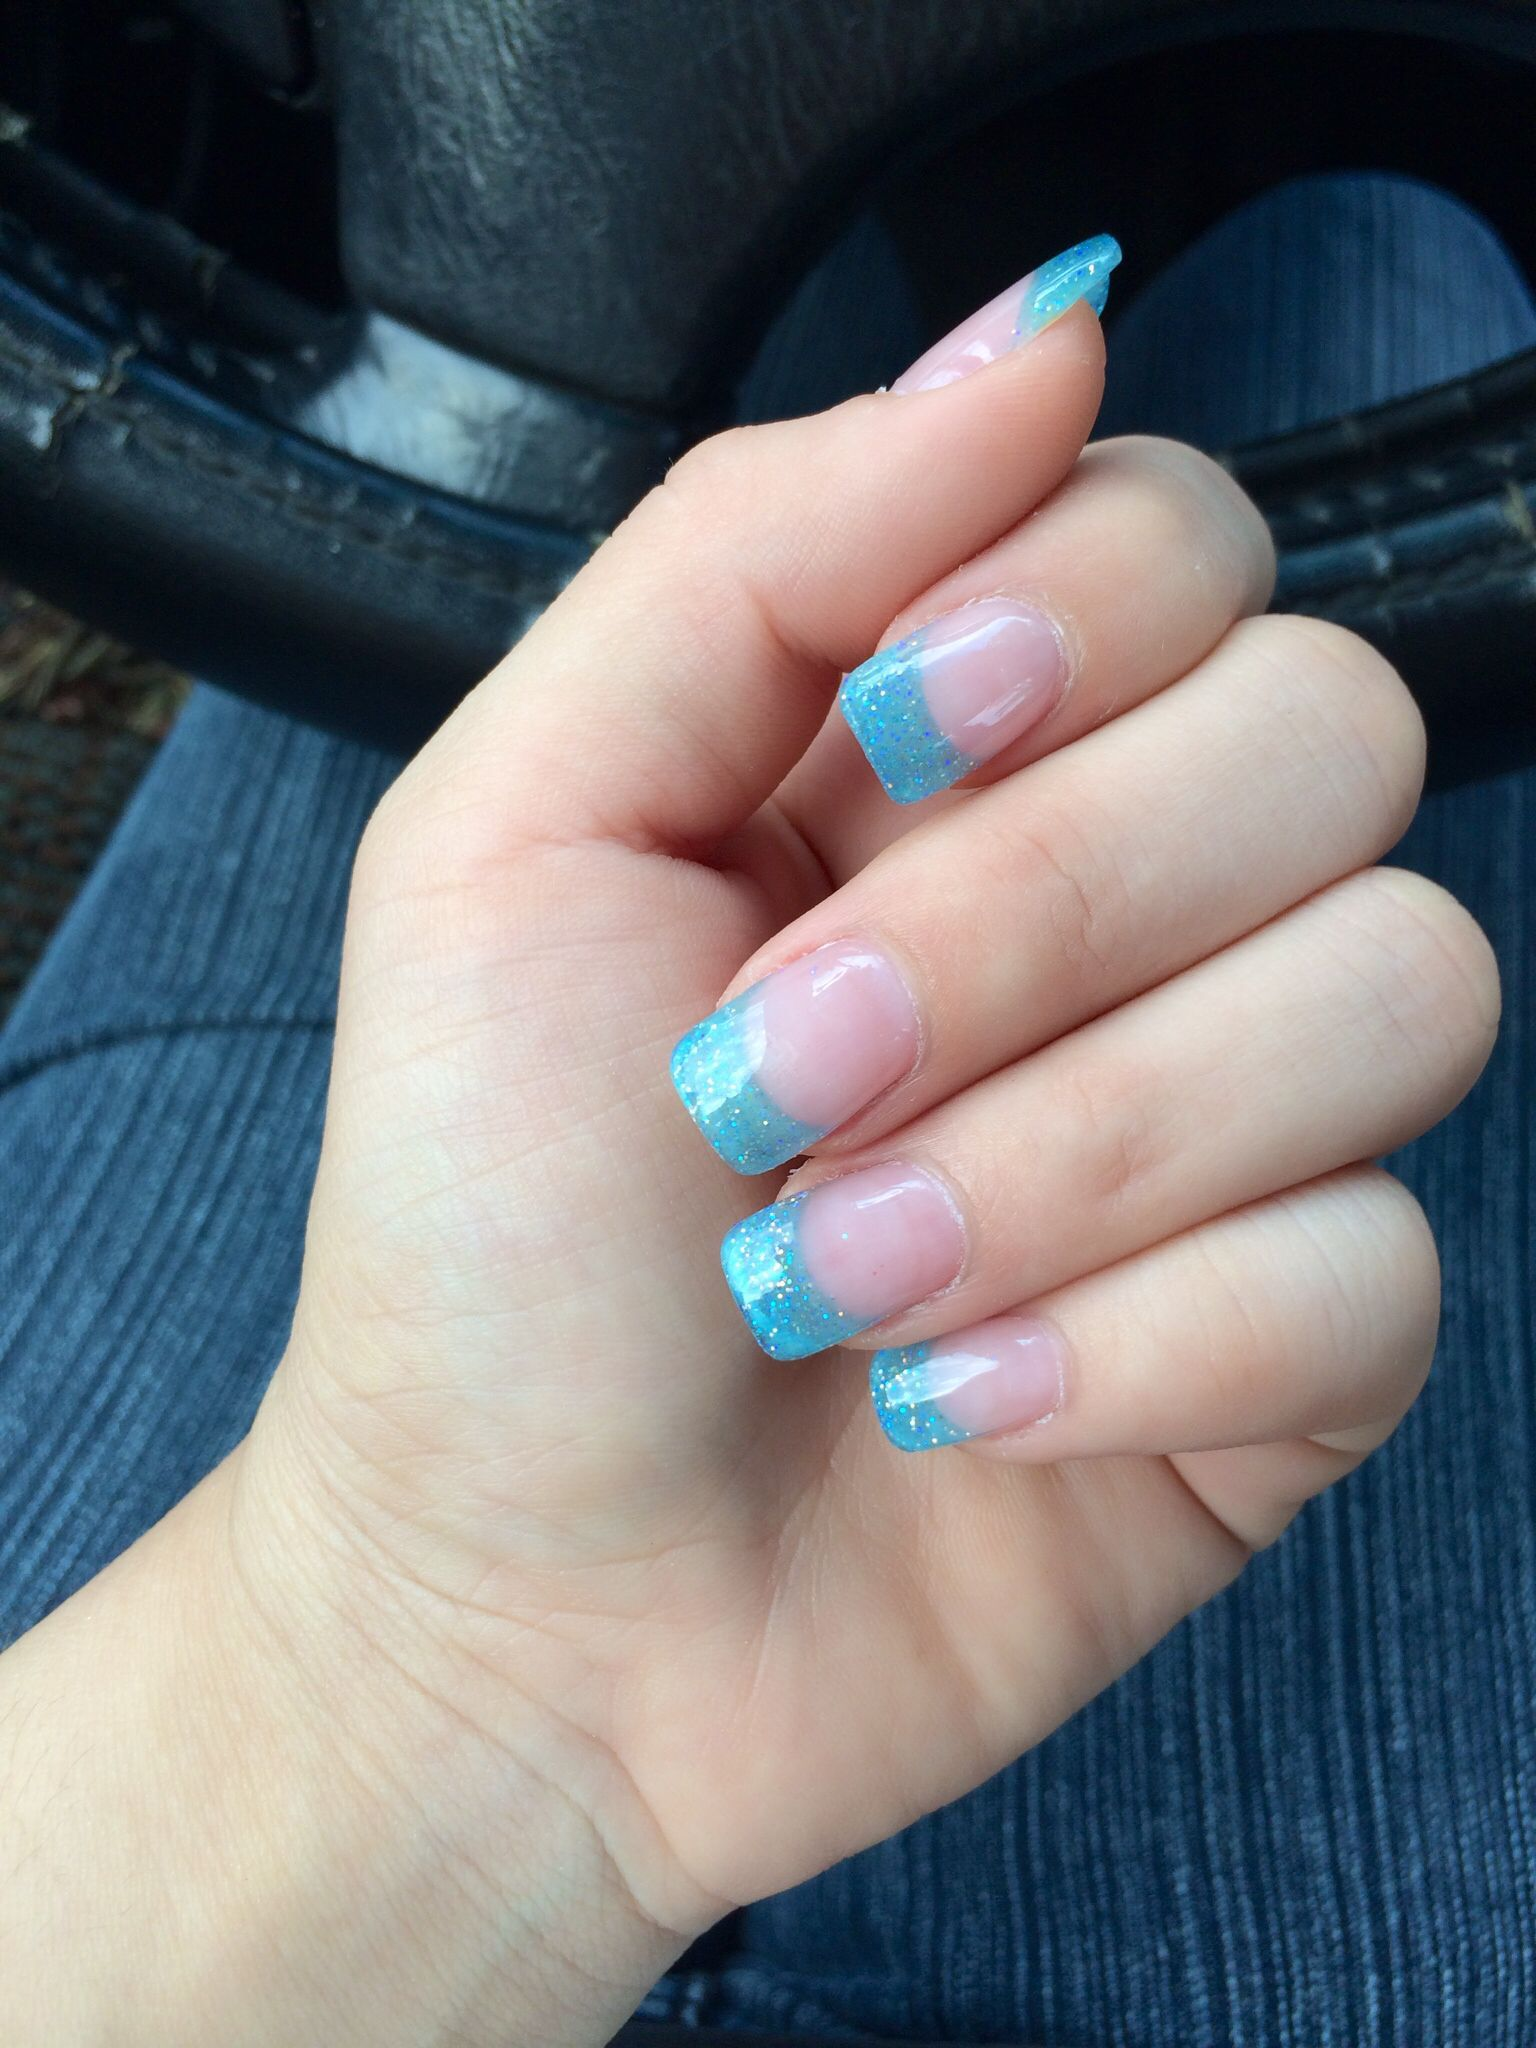 Blue Glitter Acrylic Nails French Tip Nails Acrylic Nails Glitter Light Blue Short Nail